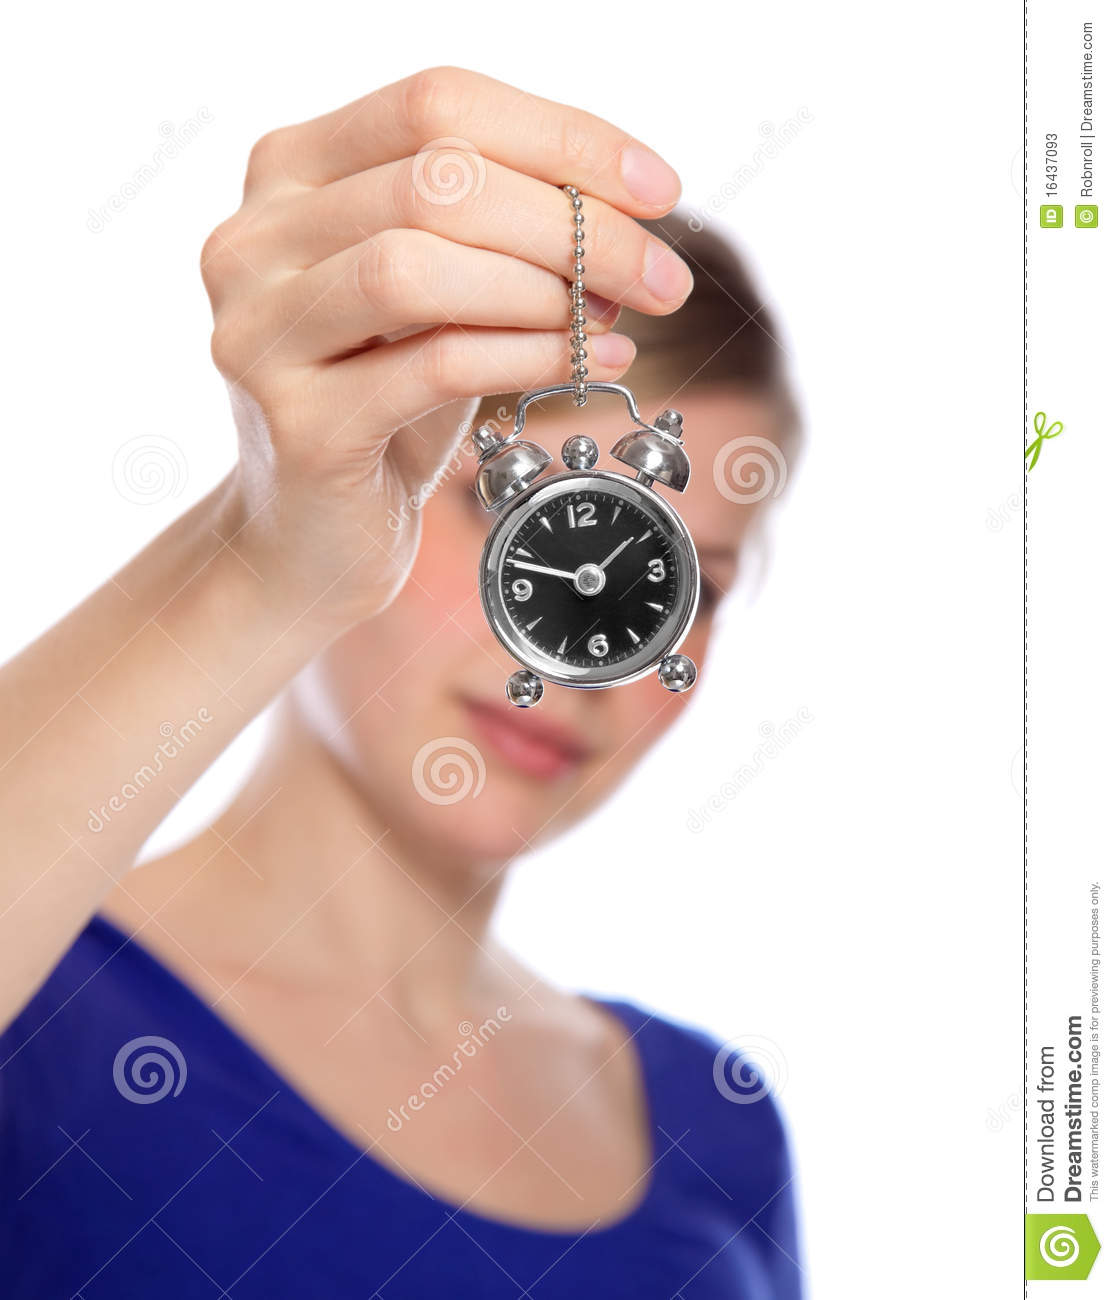 Woman holding a small alarm clock. Woman Holding A Small Alarm Clock Stock Photos   Image  16437093